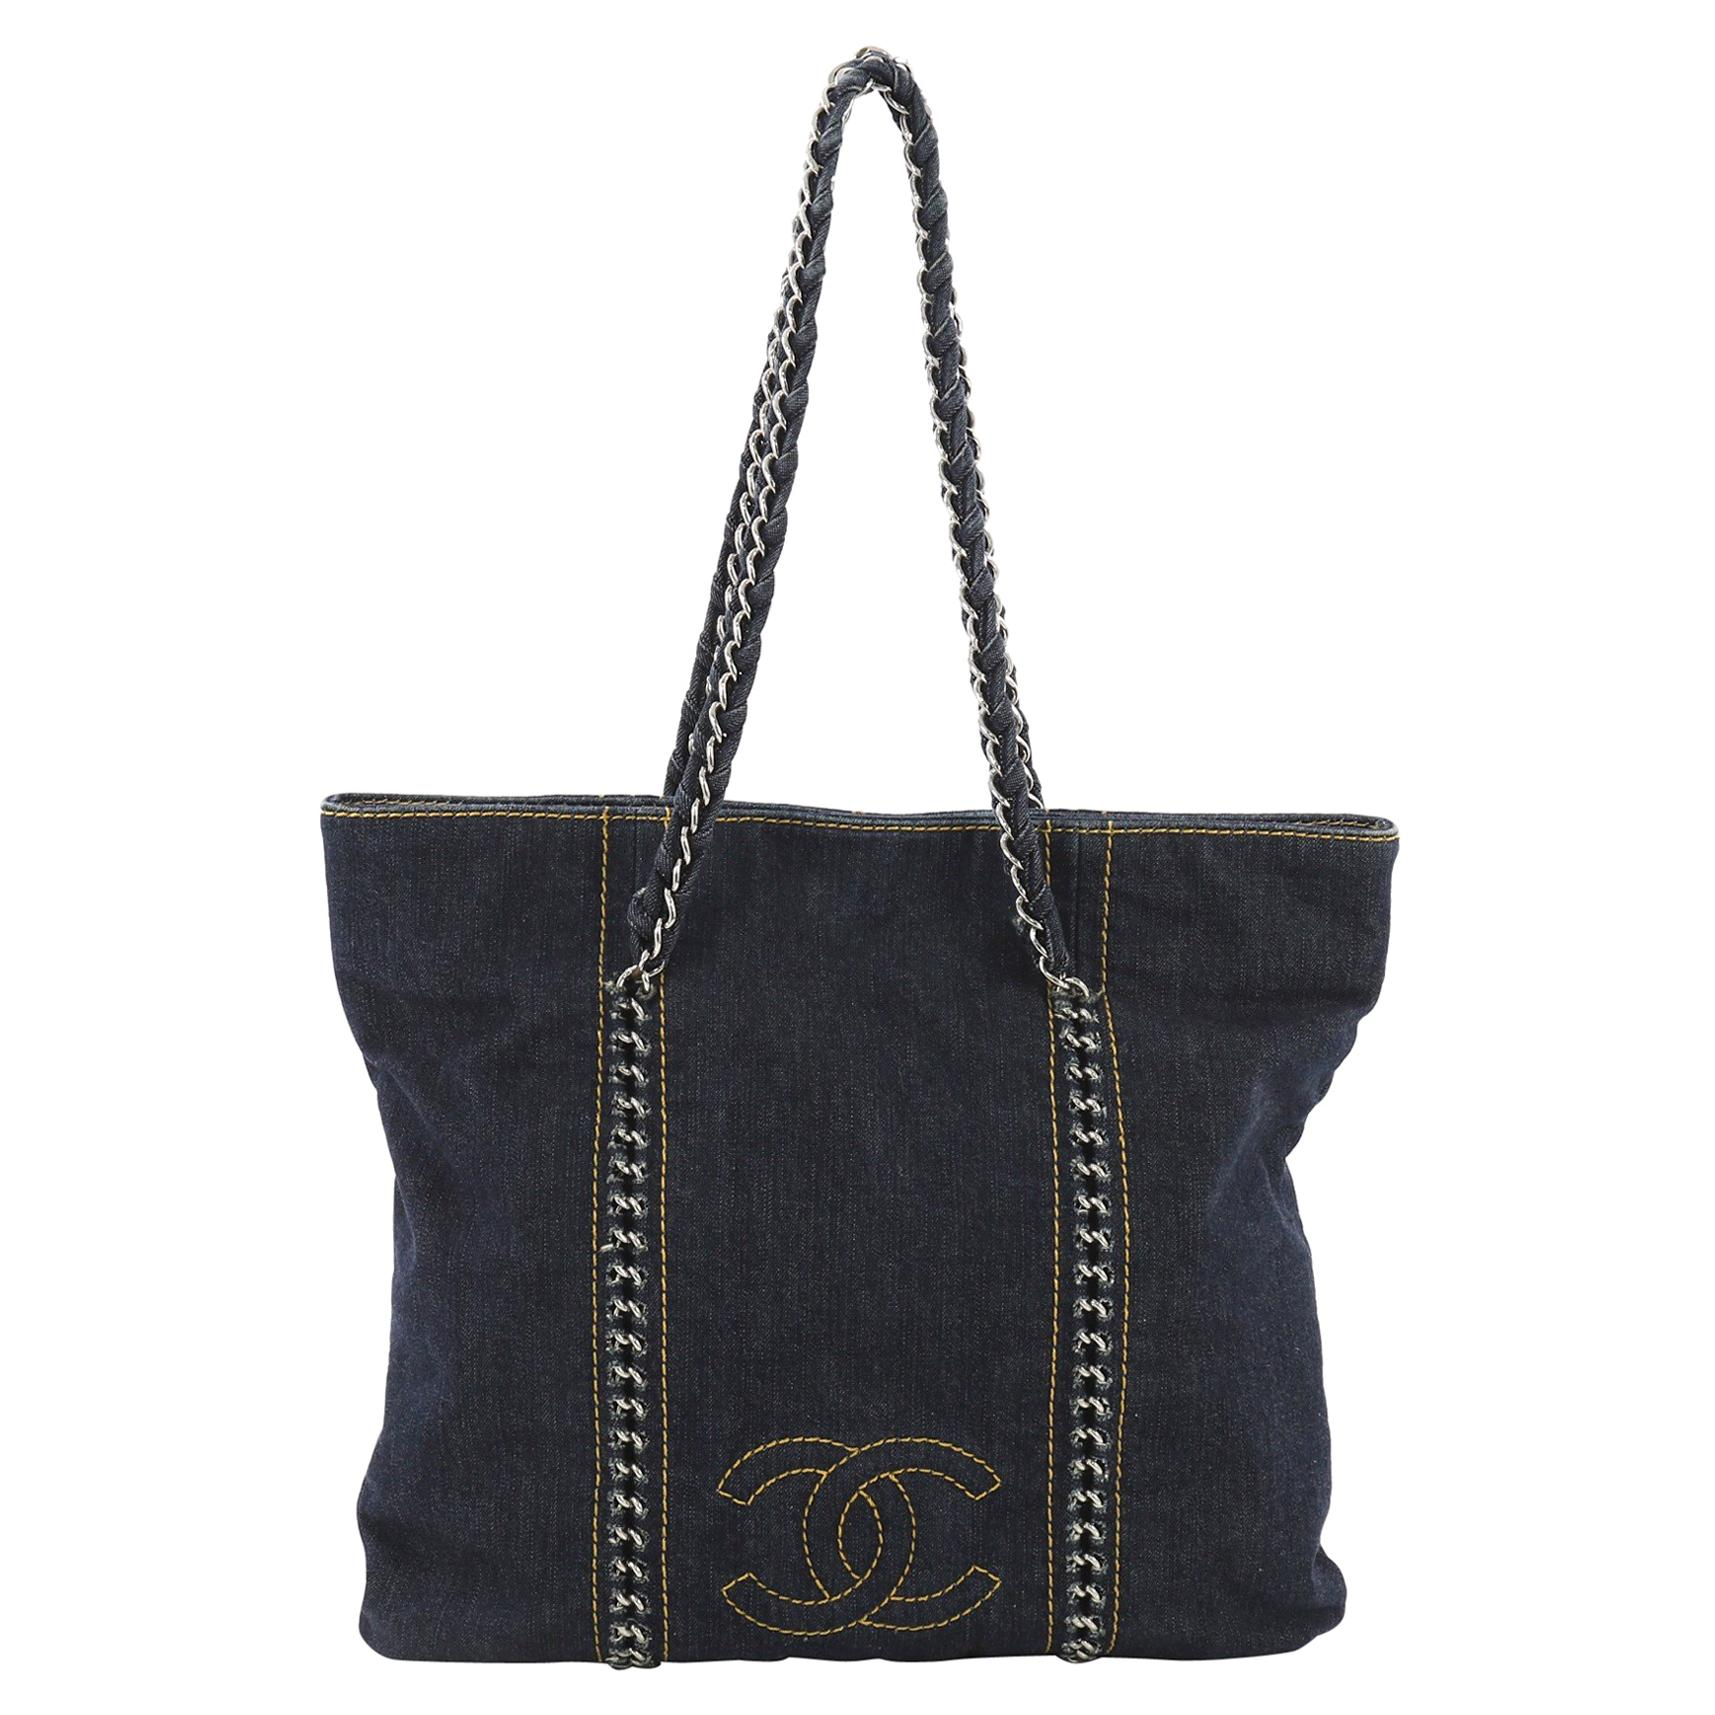 5d4b08587a8d Vintage Chanel Tote Bags - 584 For Sale at 1stdibs